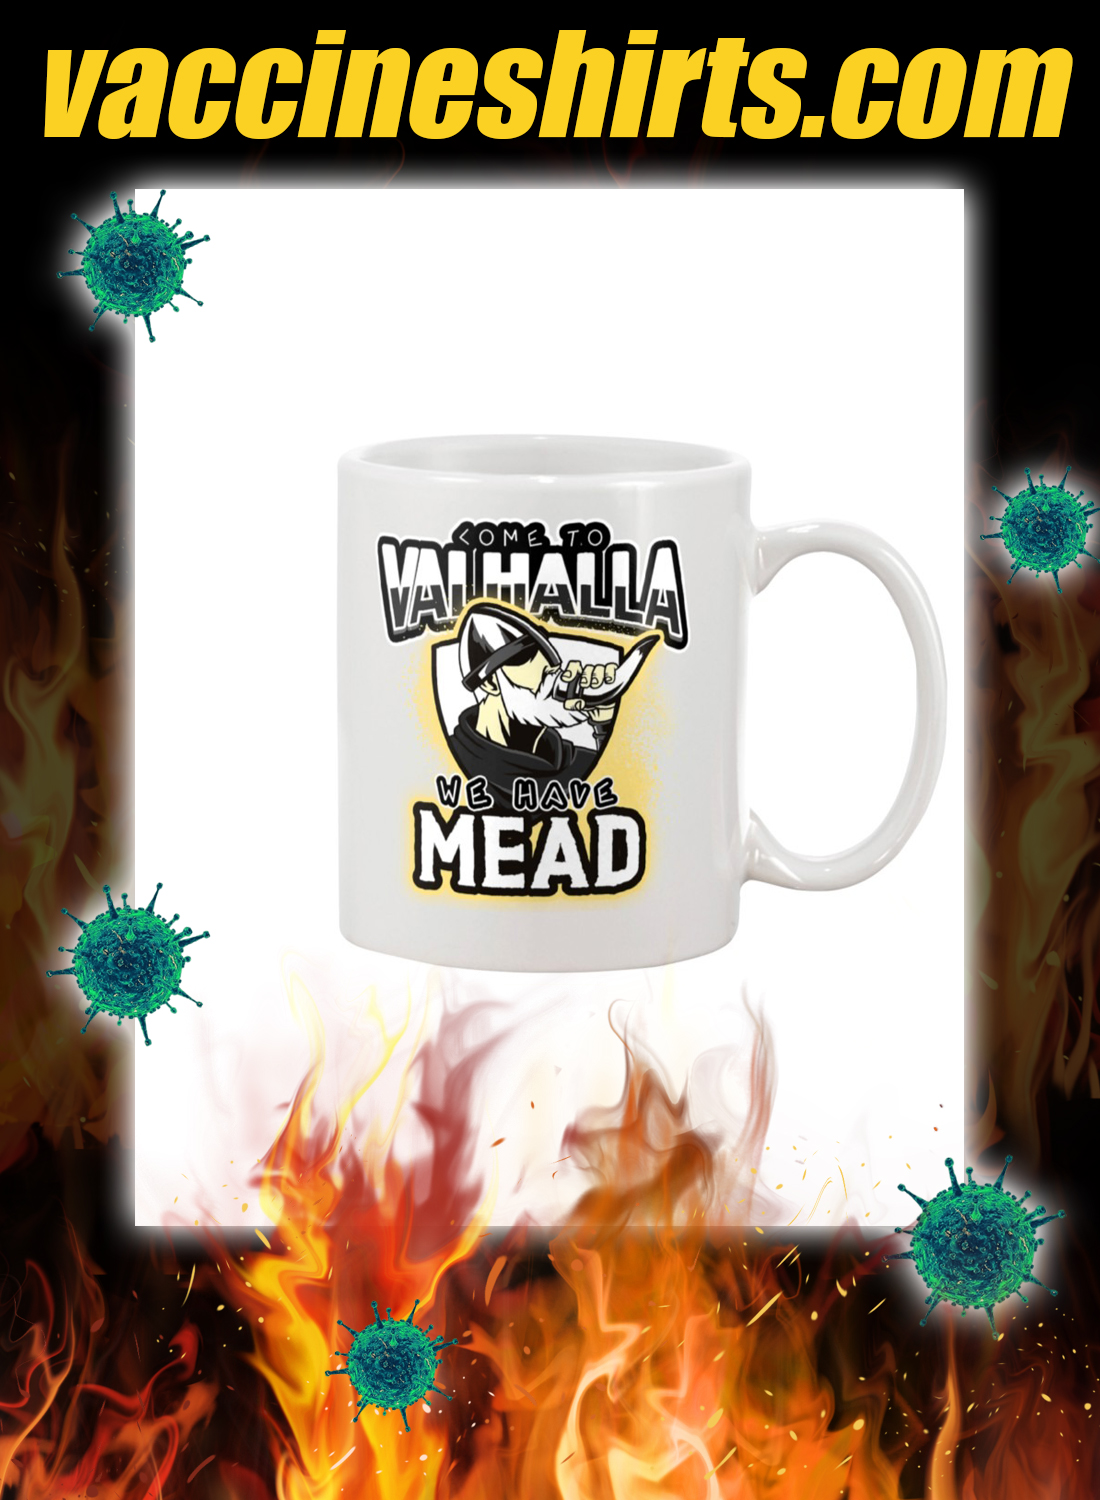 Come to valhalla we have mead mug - white